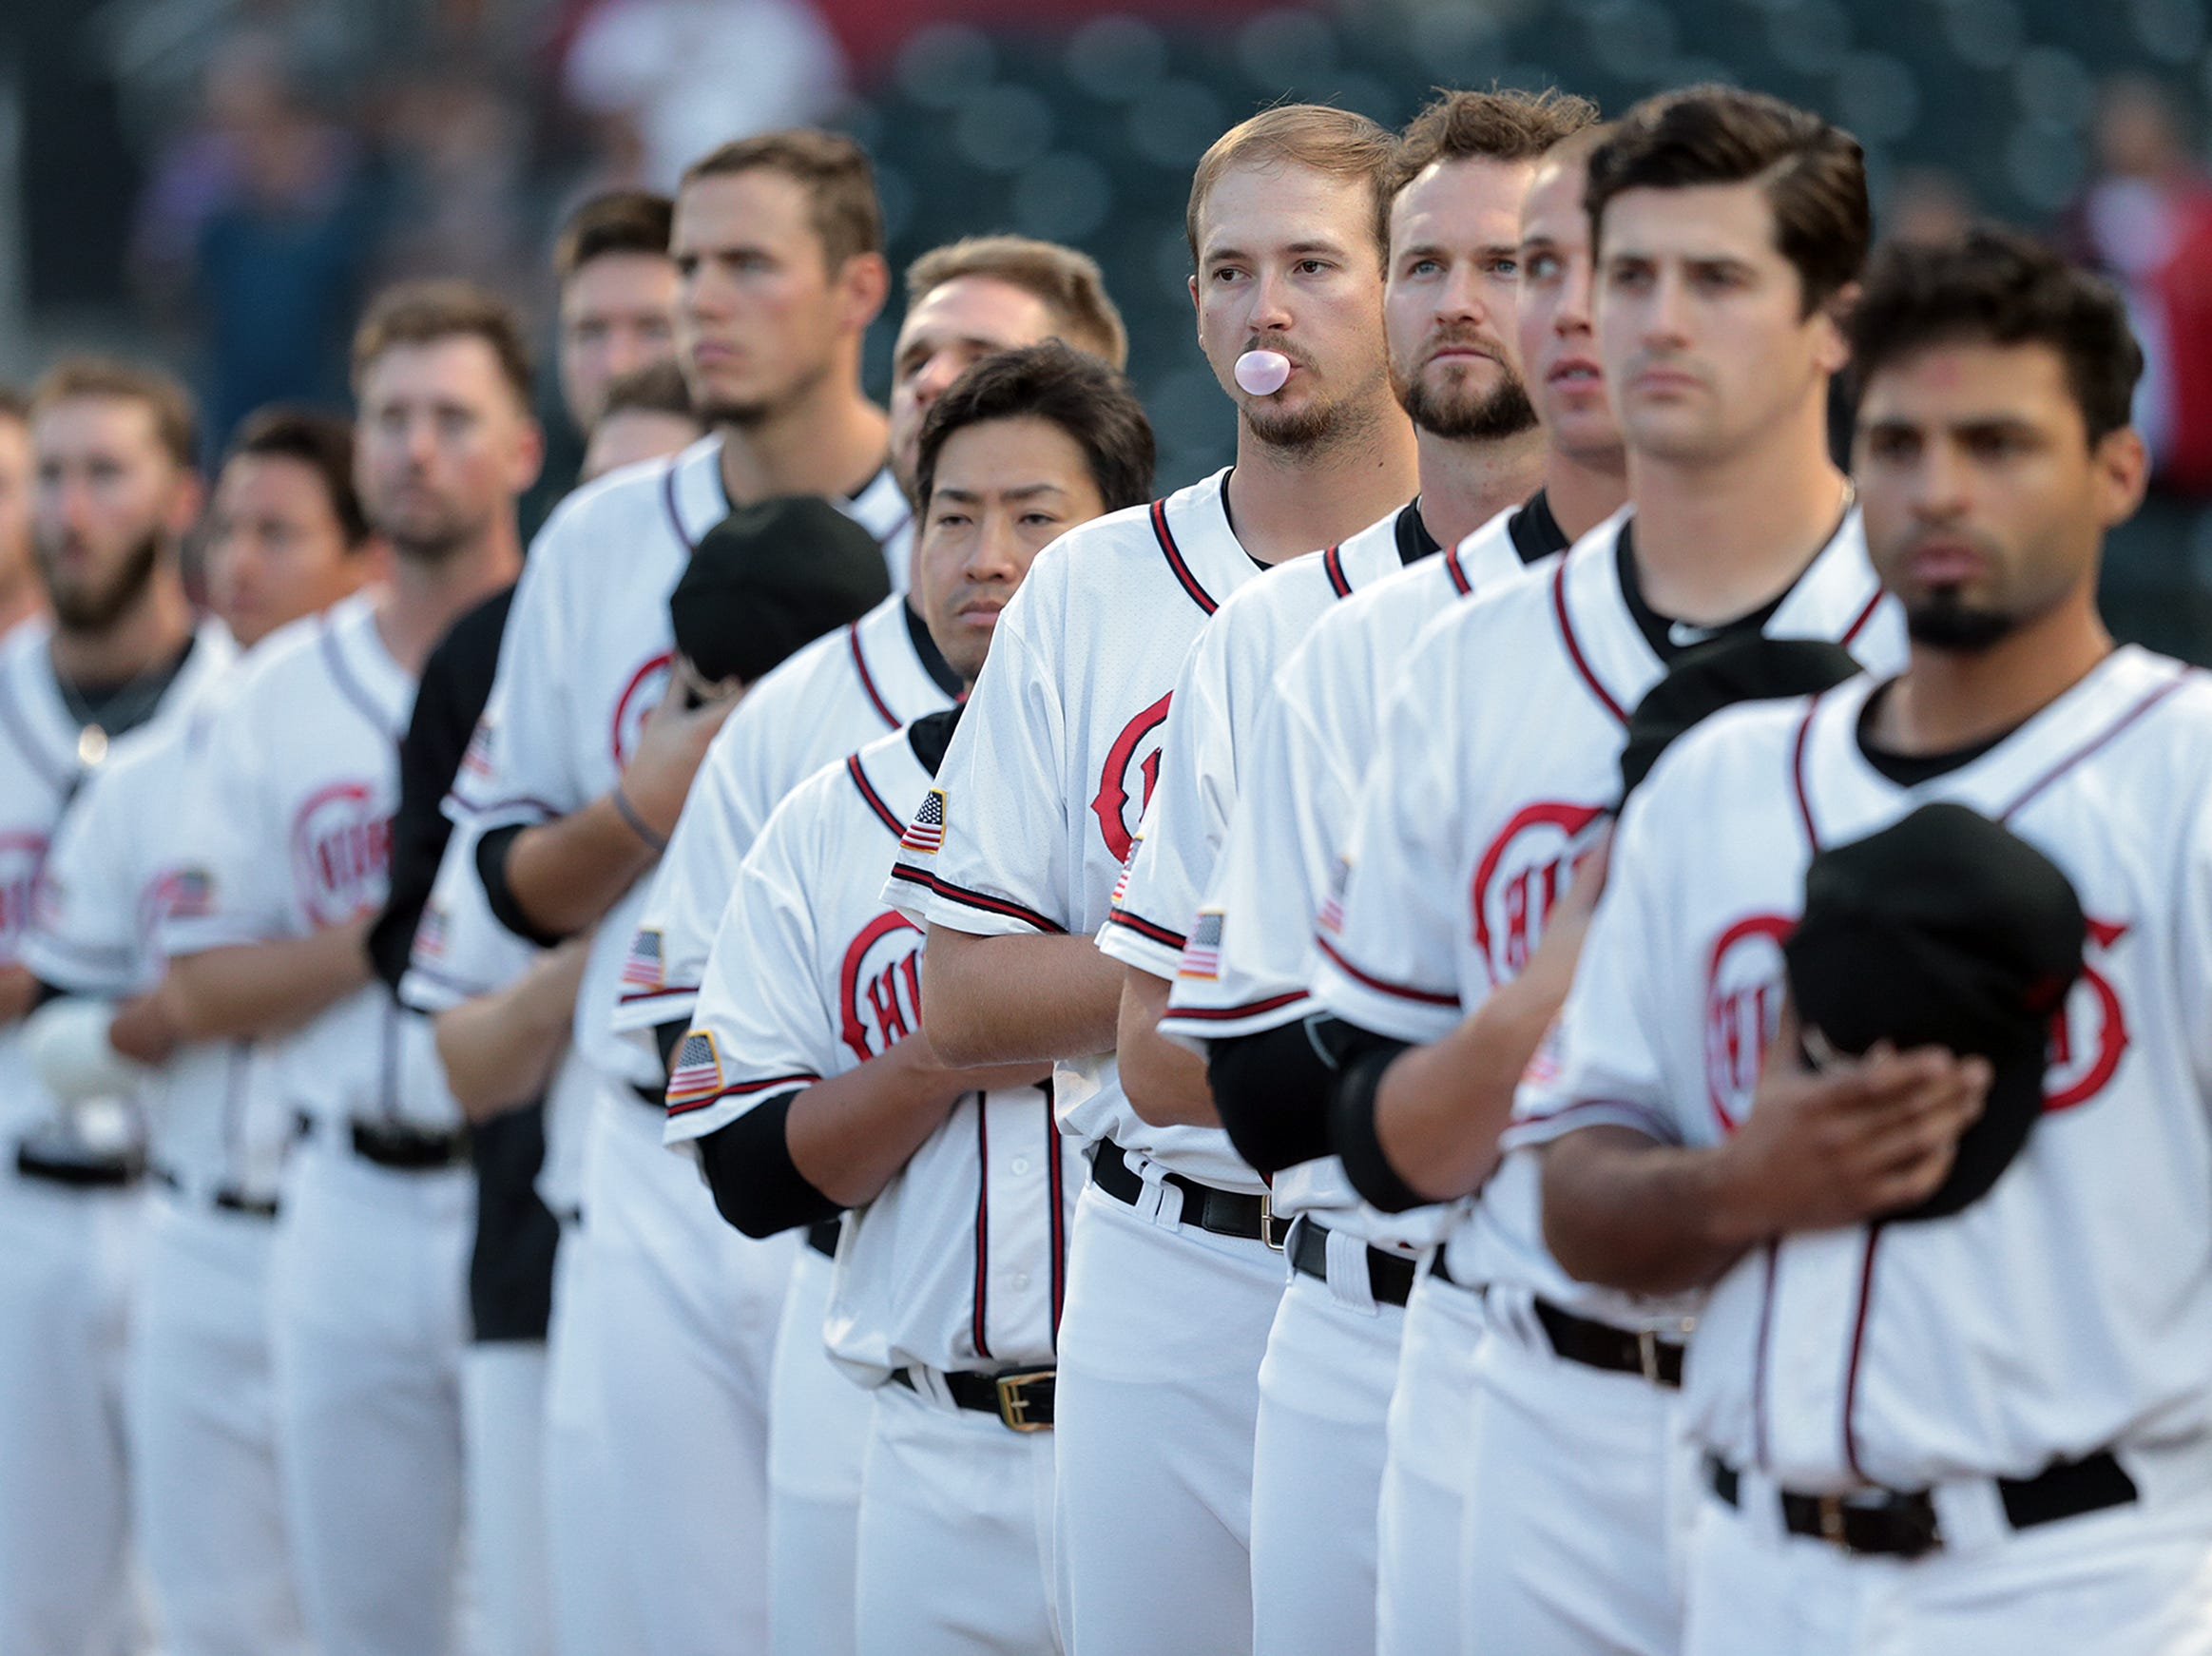 The El Paso Chihuahuas are shown kicking off their playoff series against Fresno.